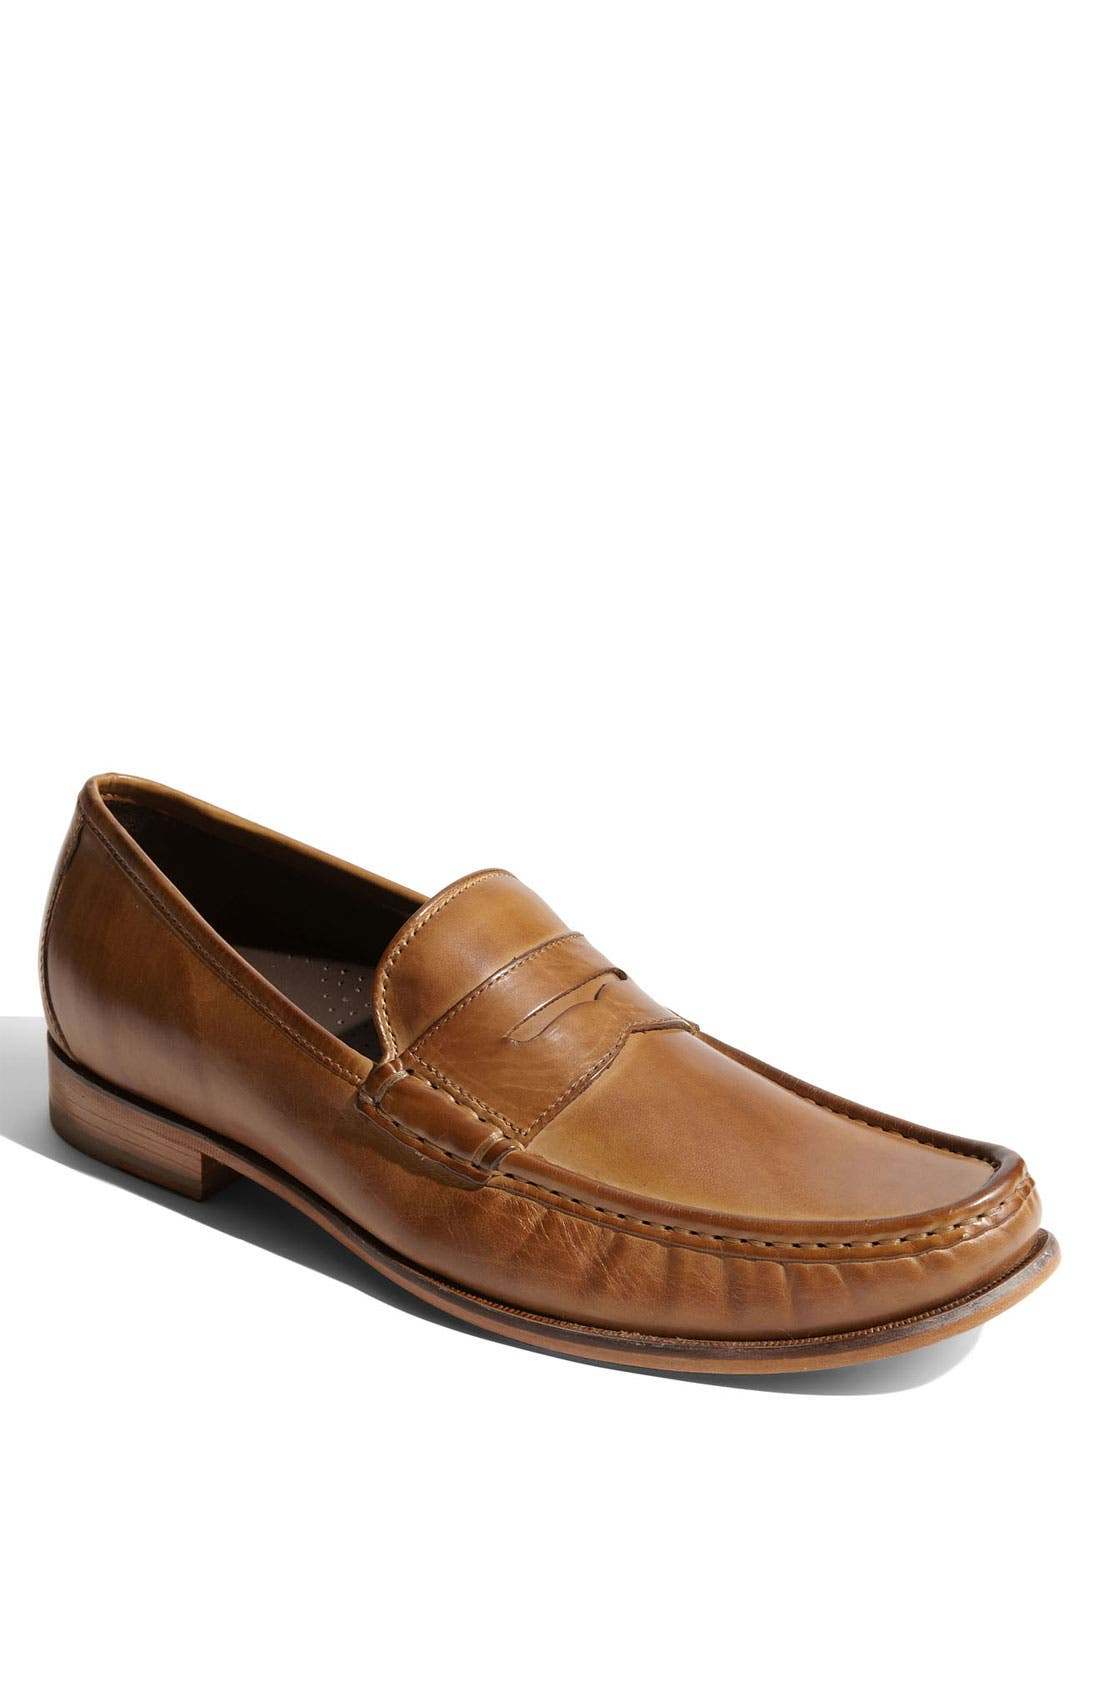 Main Image - Cole Haan 'Air Aiden' Penny Loafer